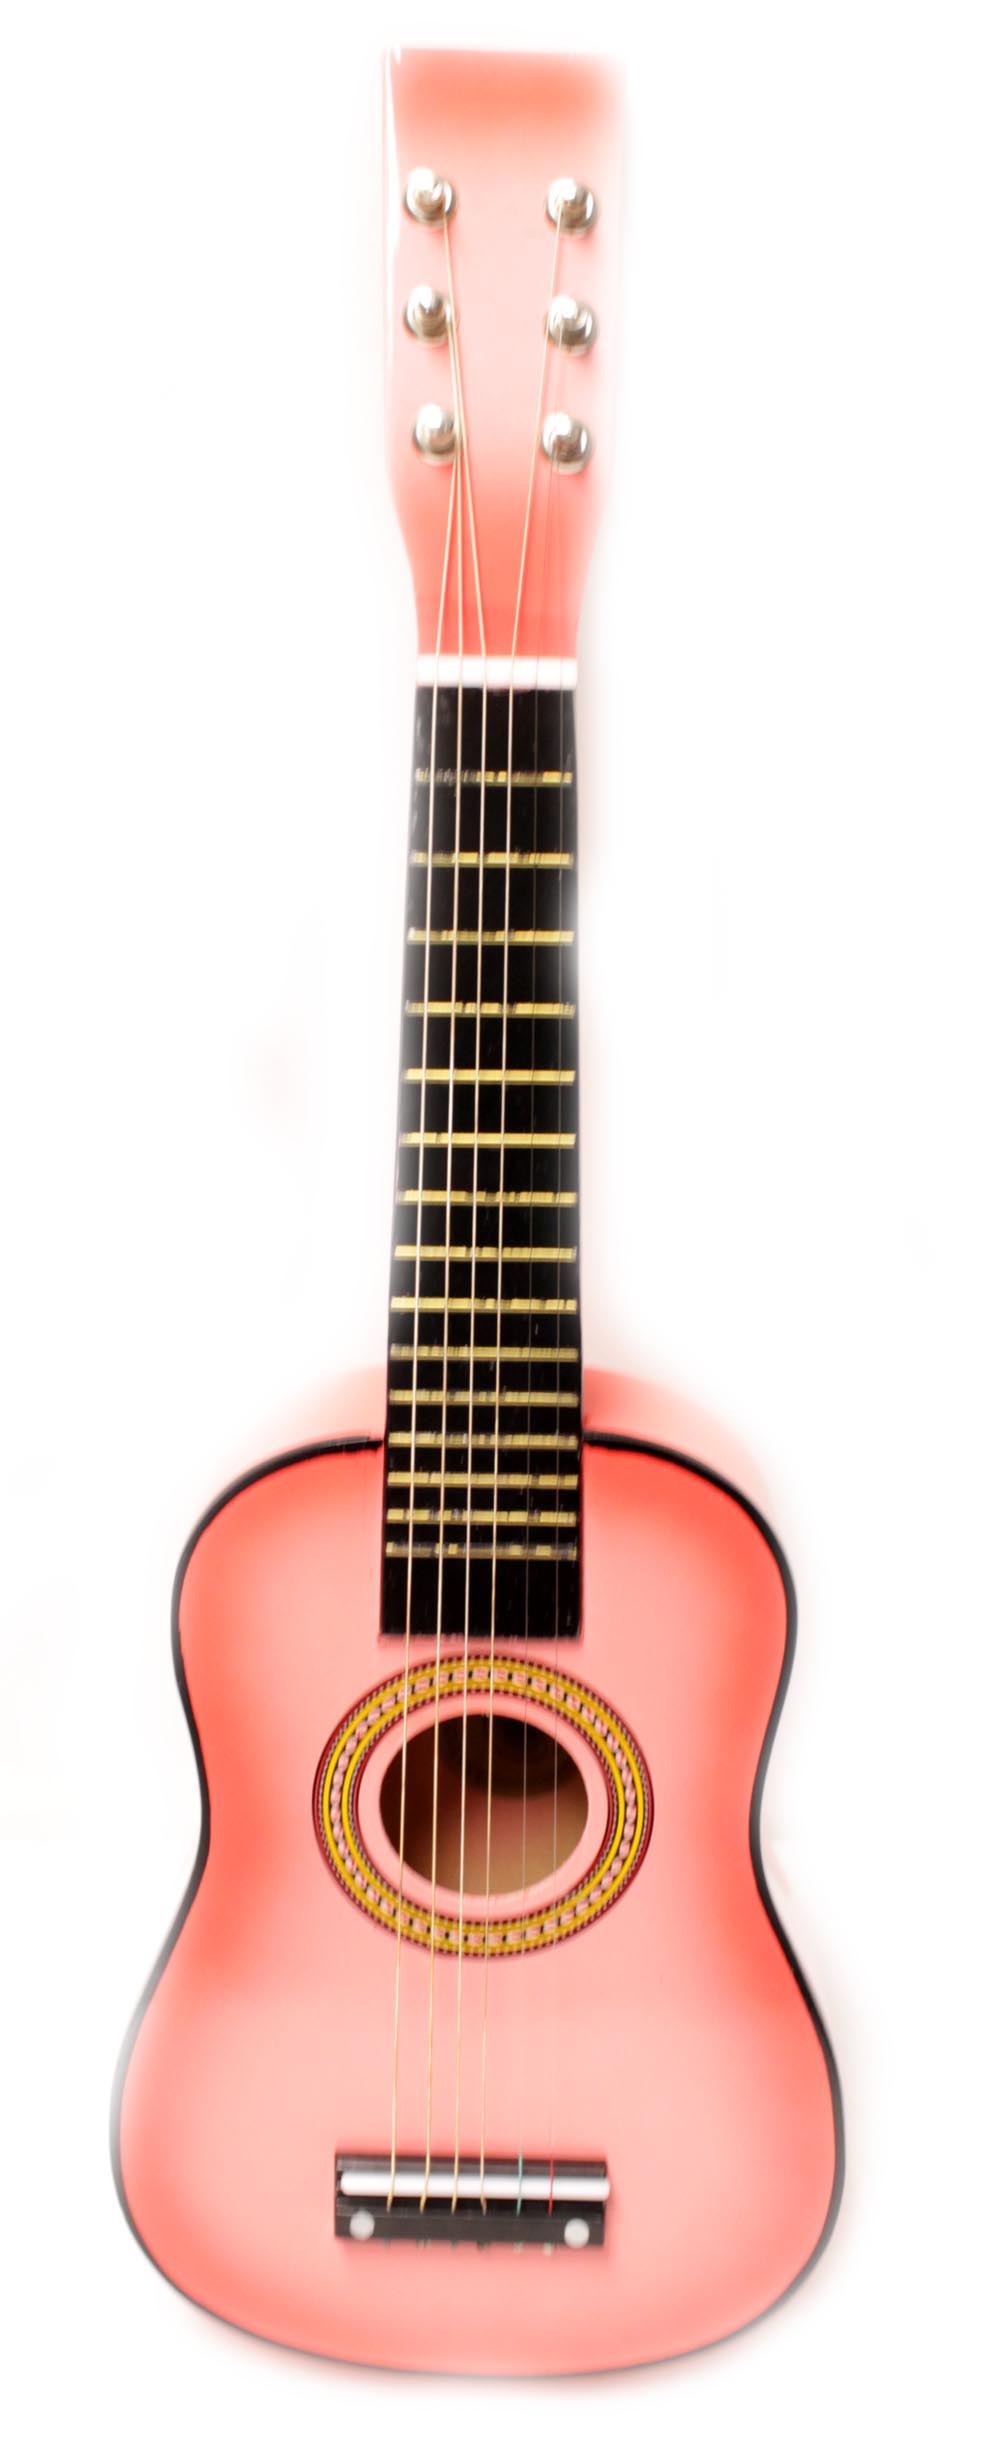 23 childrens toy acoustic guitar all colors available ebay. Black Bedroom Furniture Sets. Home Design Ideas